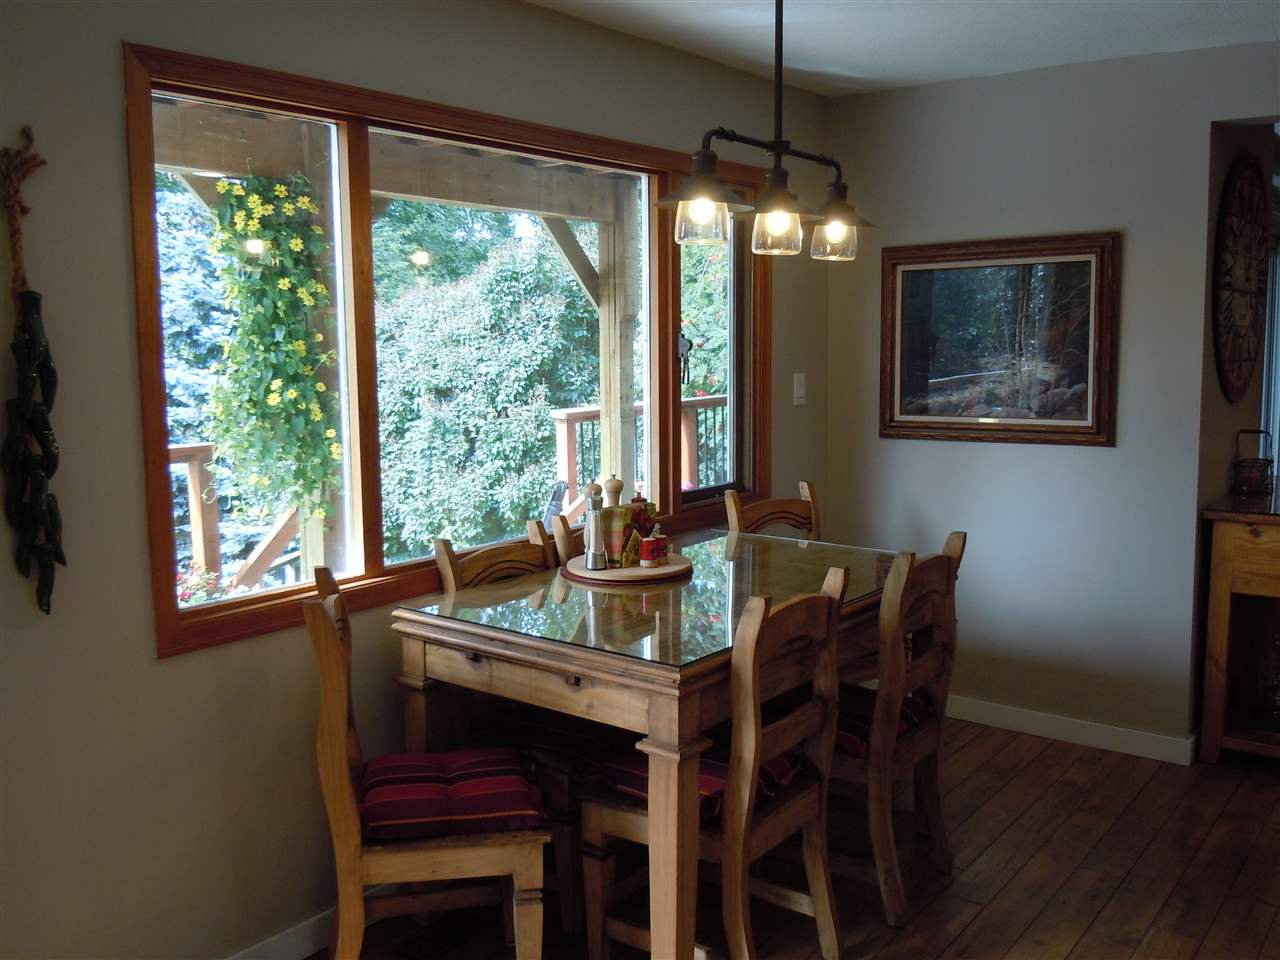 Photo 9: Photos: 4318 STEVENS Drive in Prince George: Edgewood Terrace House for sale (PG City North (Zone 73))  : MLS®# R2439572